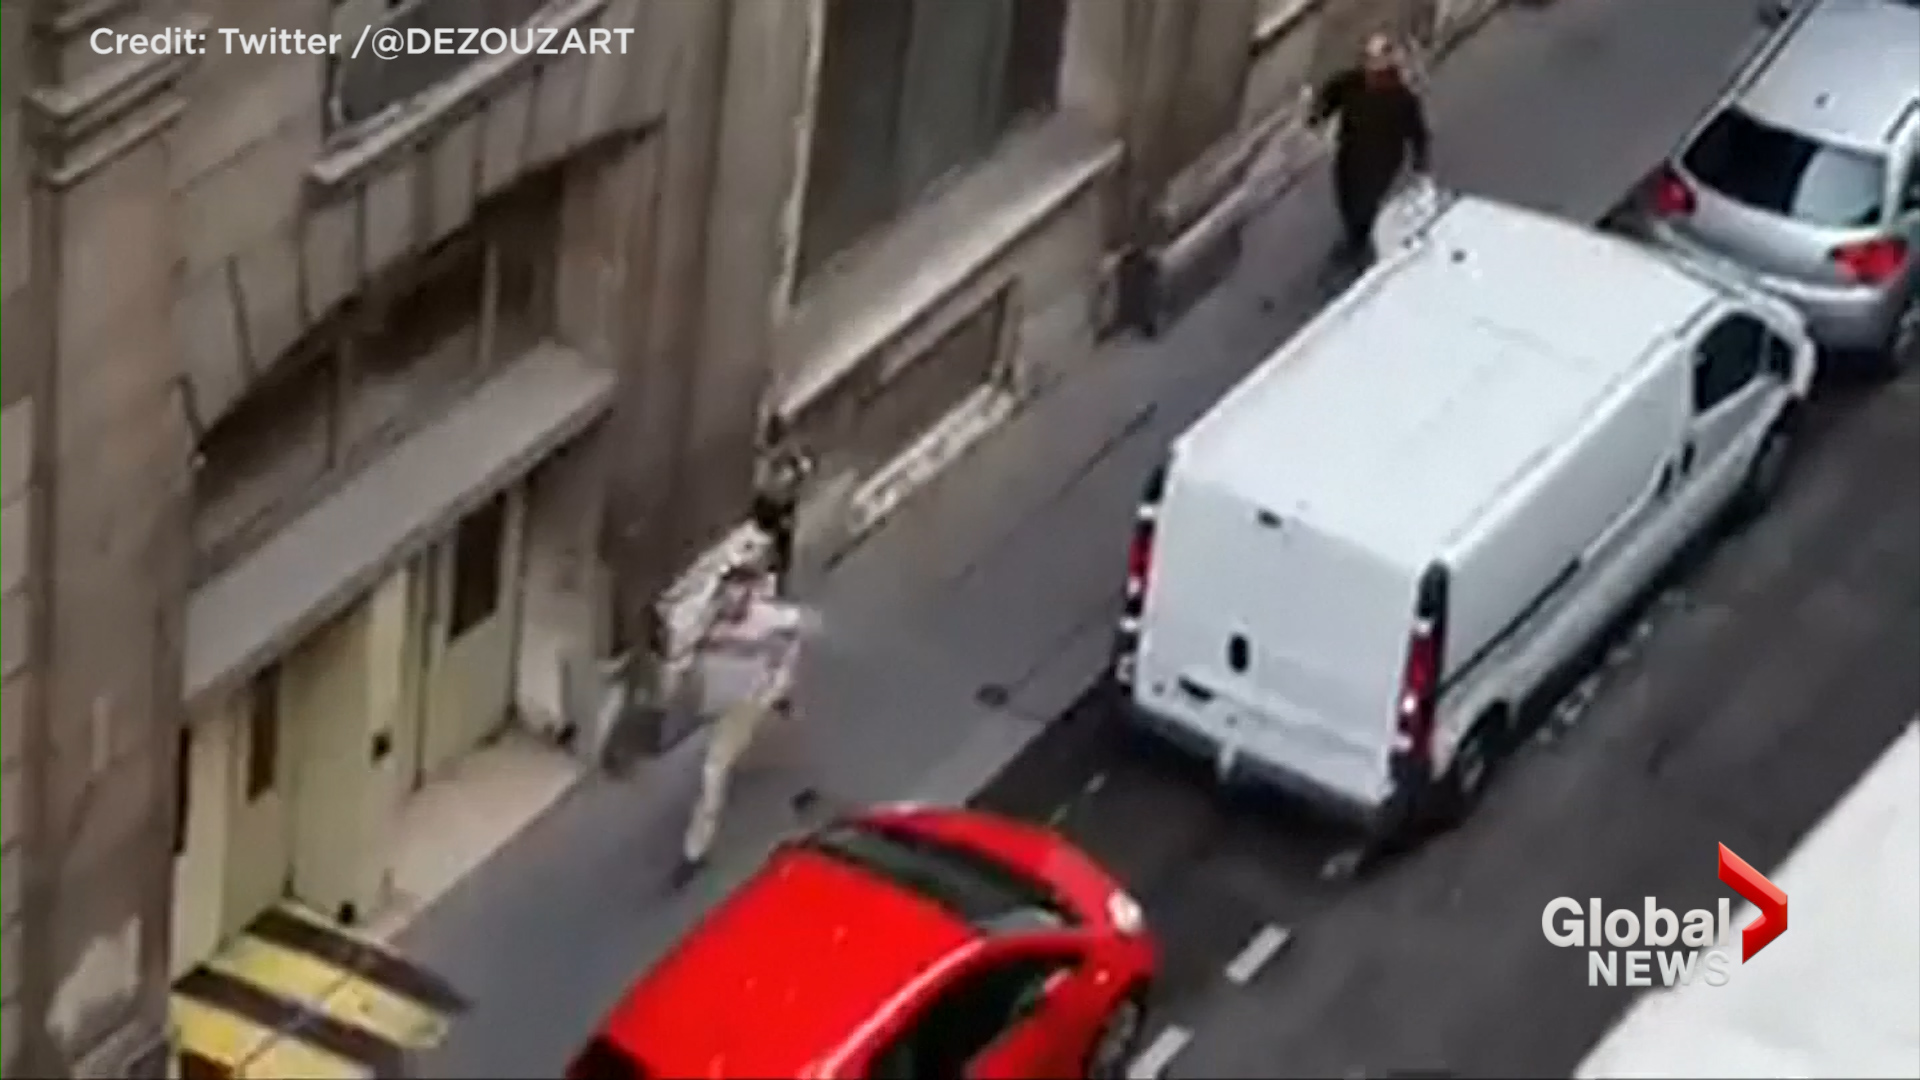 Deadly knife attack in Paris